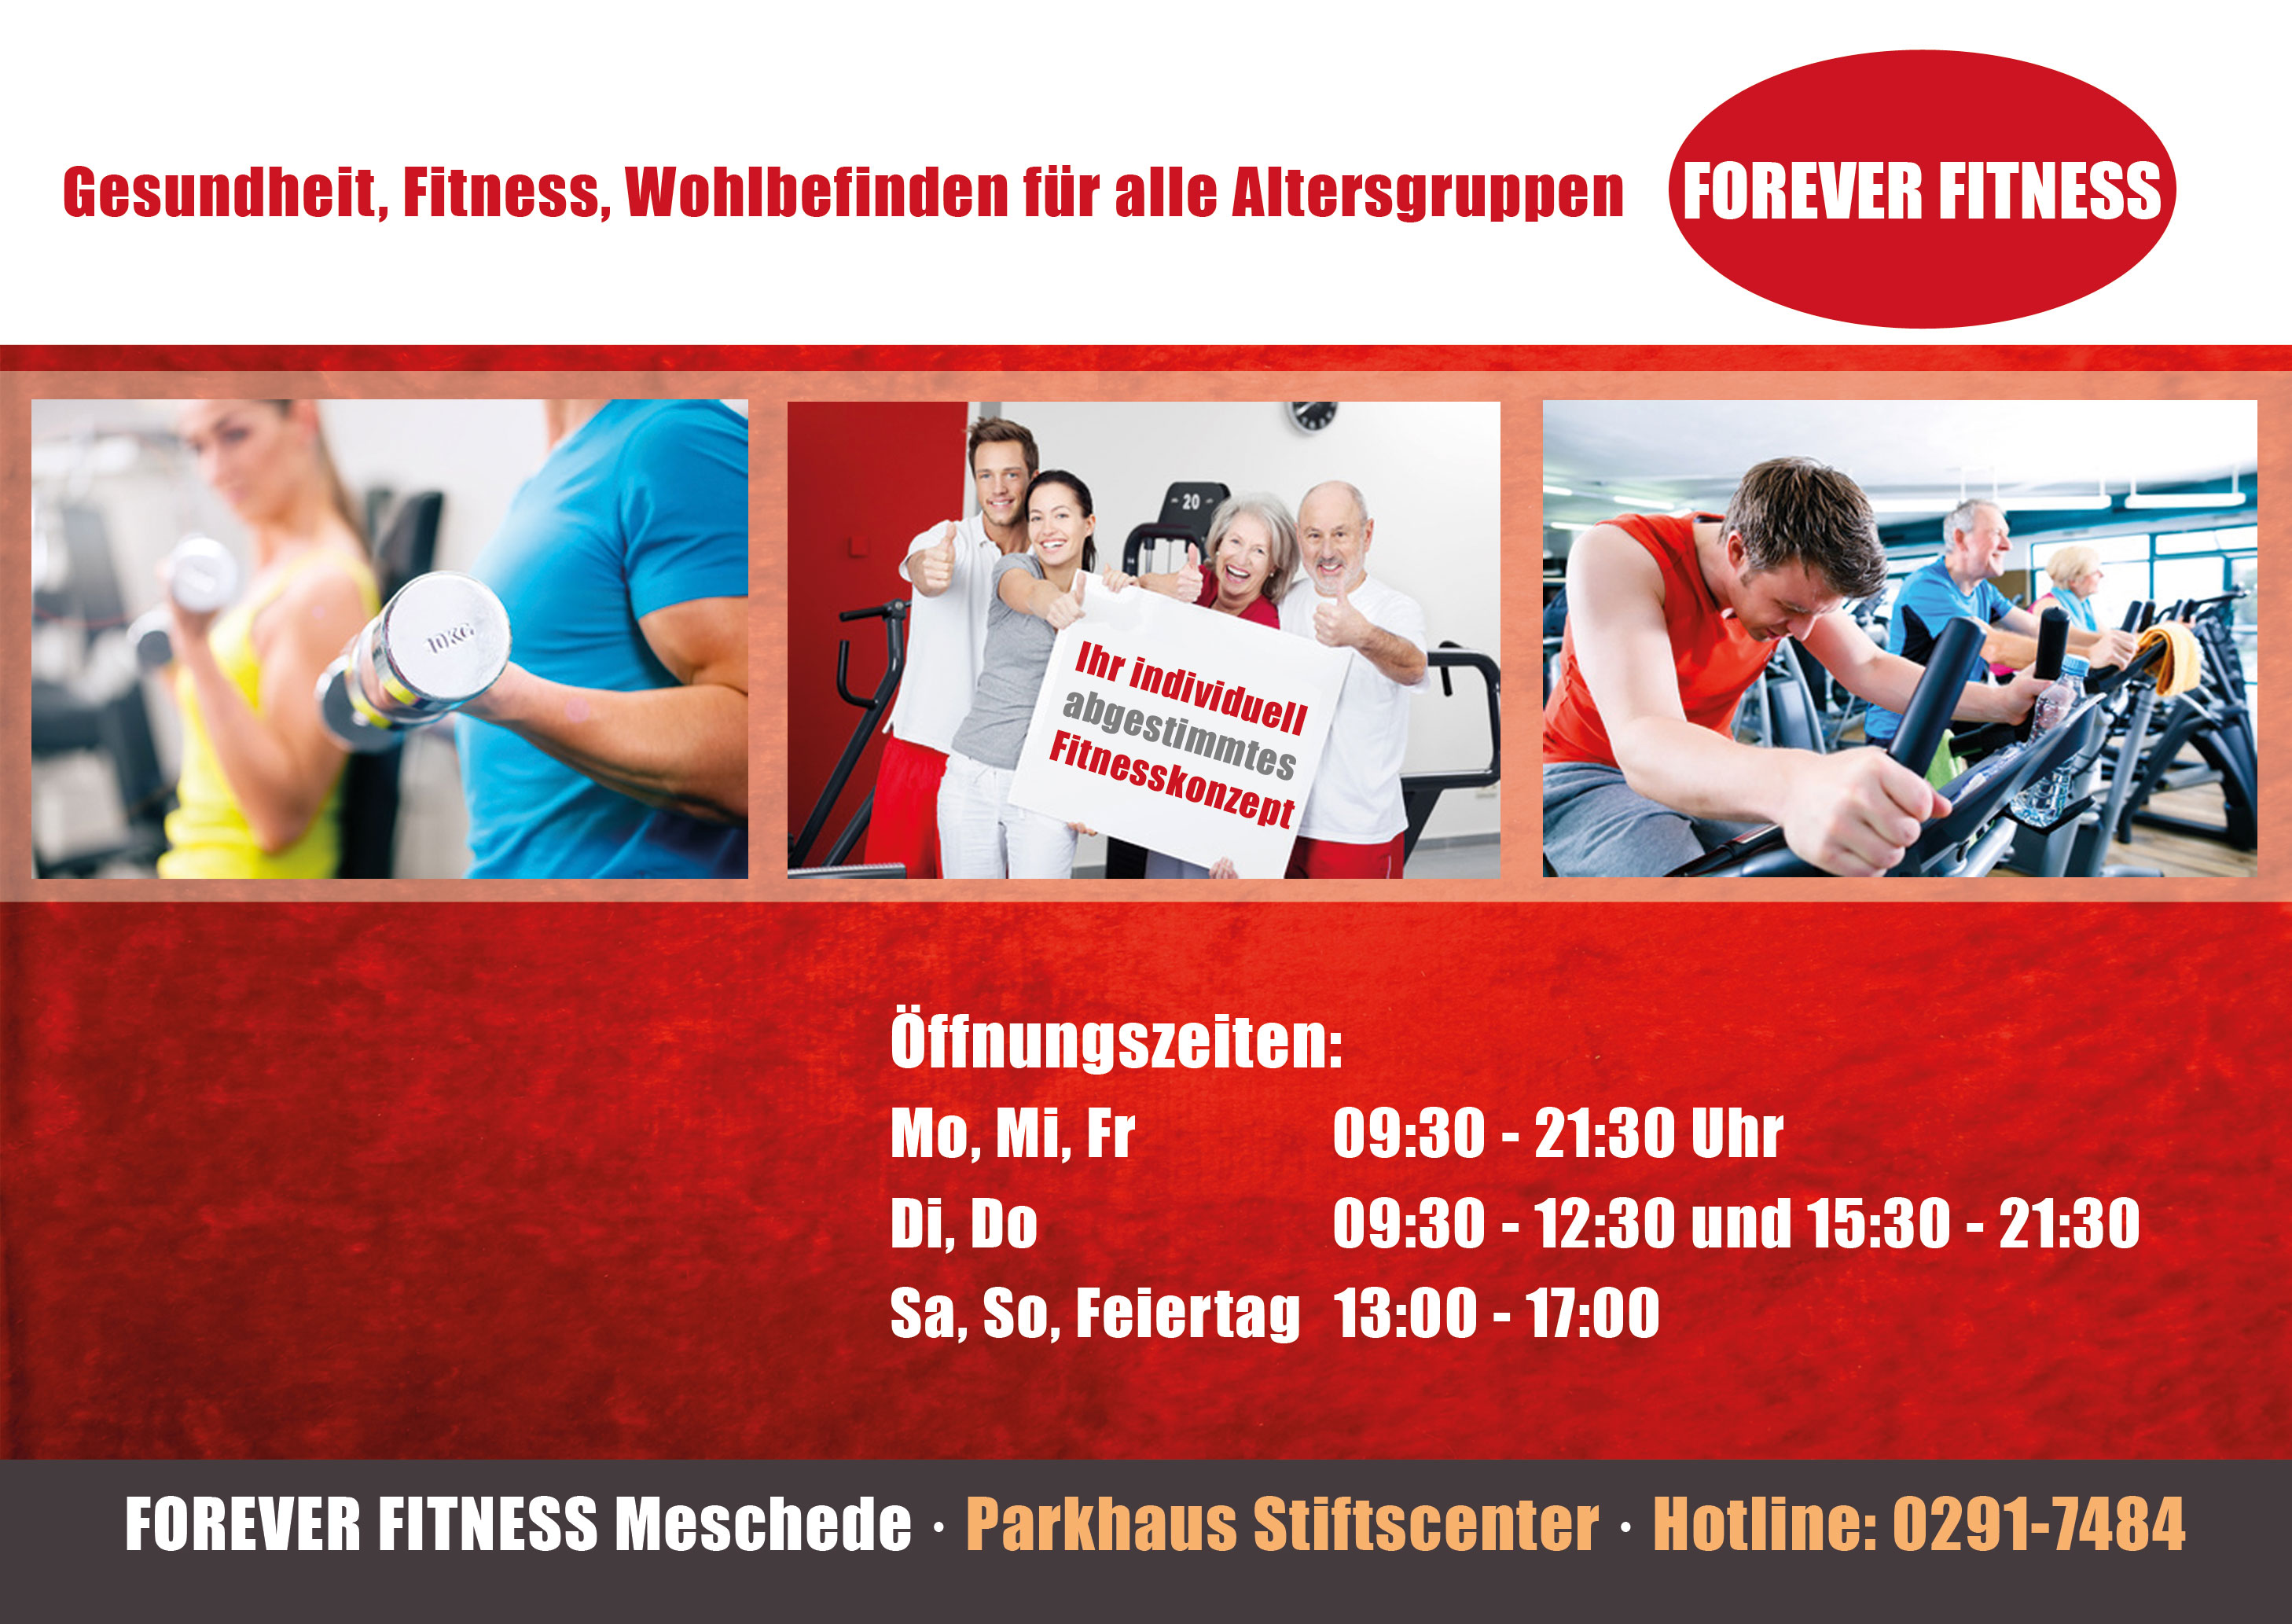 forever fitness Meschede